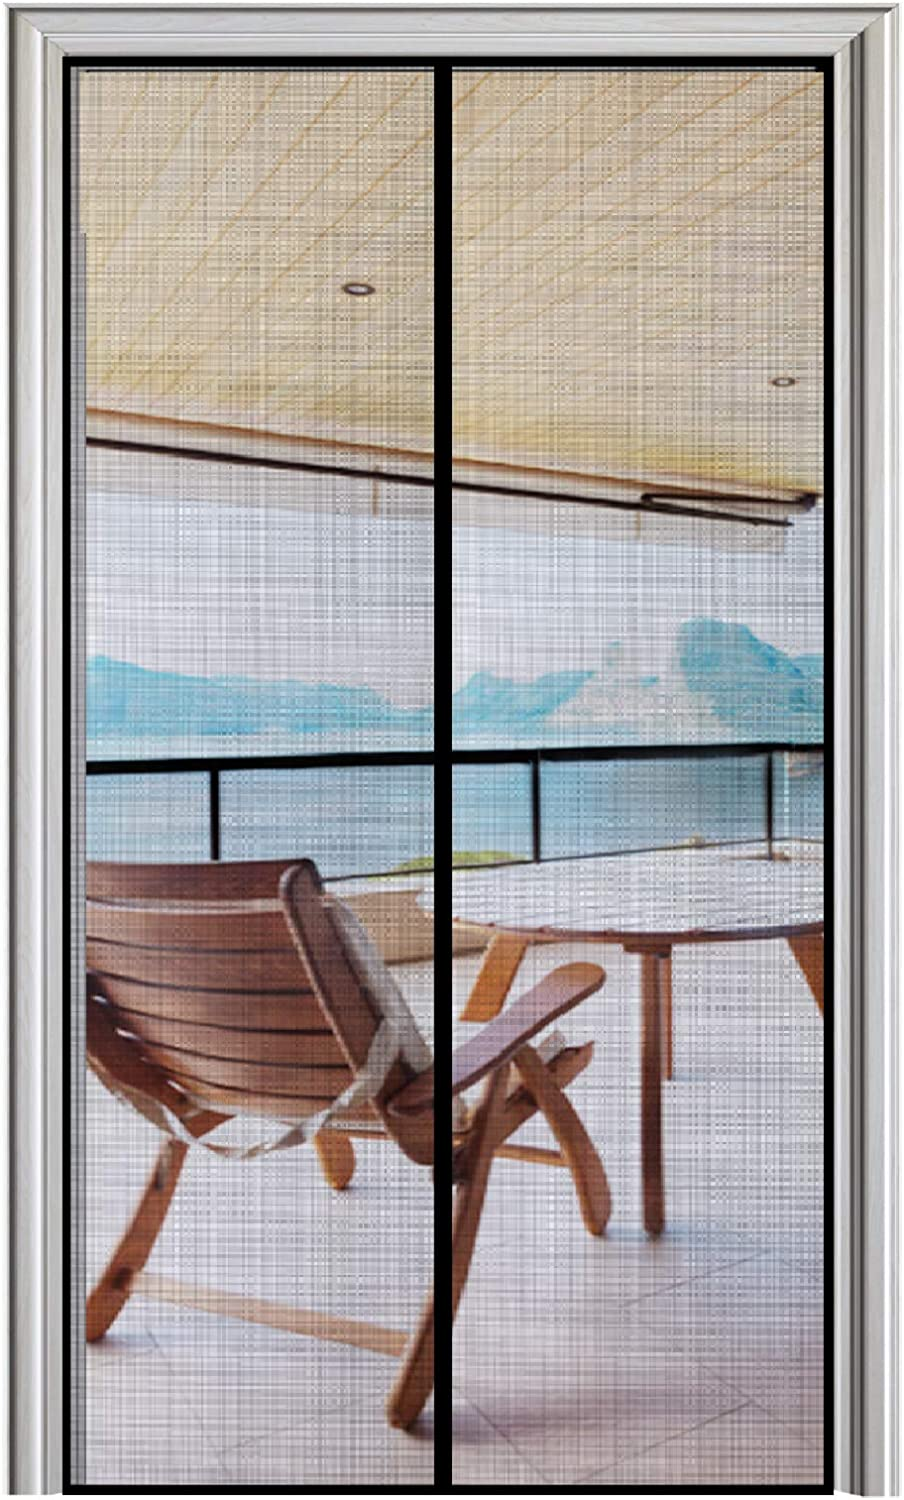 Strengthened Fiberglass Insect Fly Mesh Fit Doors Size Up to 28W x 80H Max Narrow Magnetic Screen Door 28 x 80